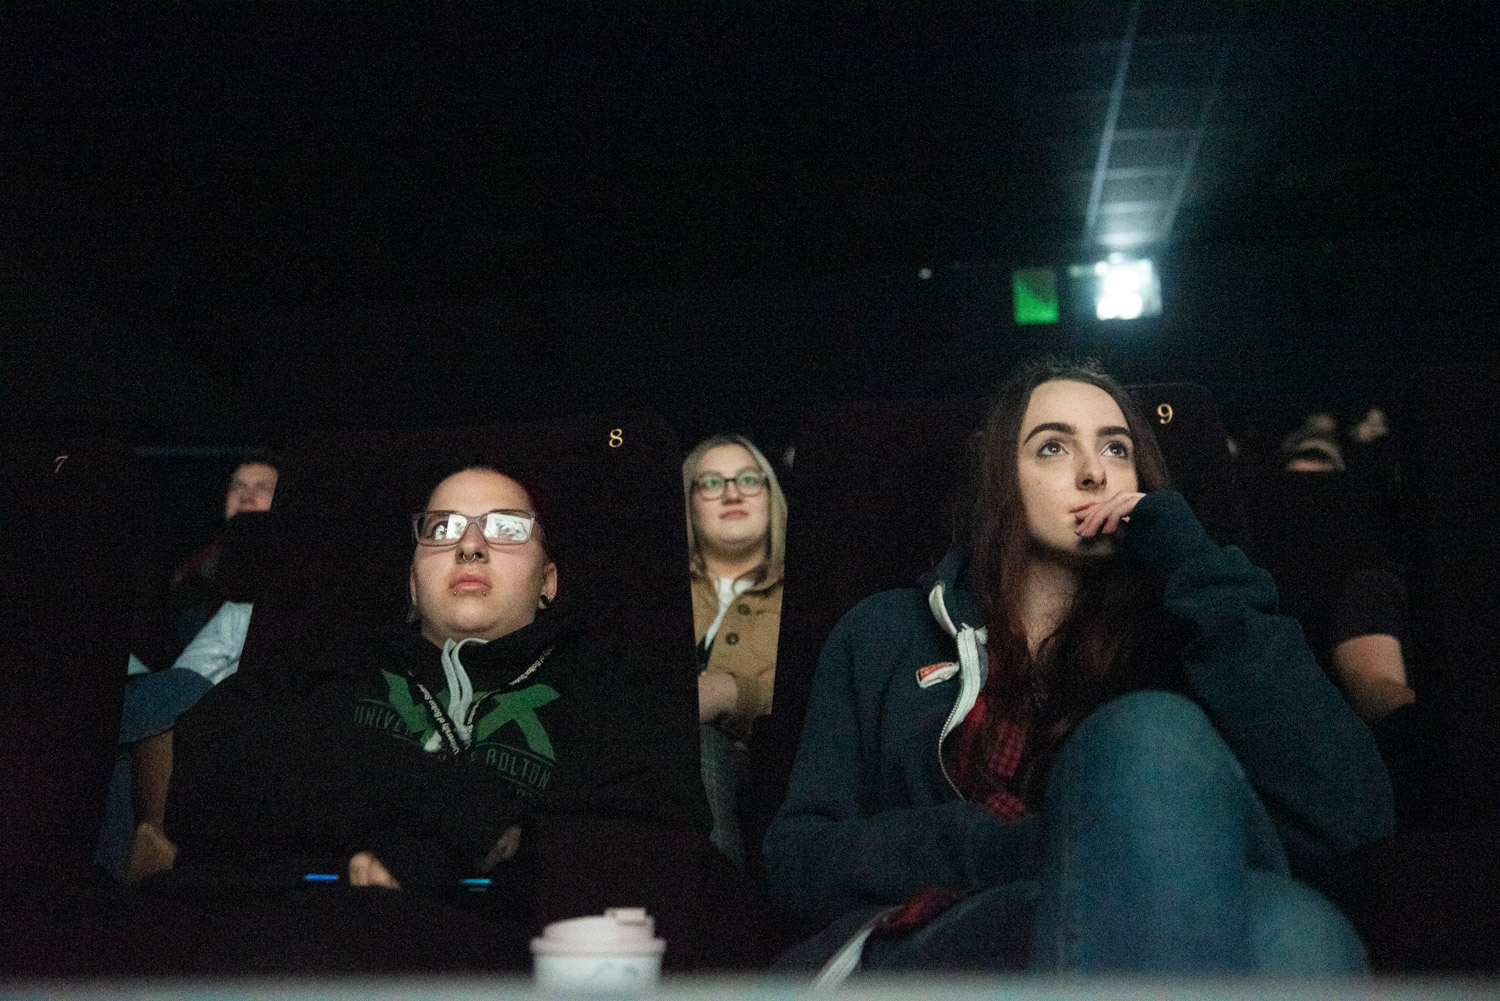 Close up of viewers watching a screening of a short film during the festival